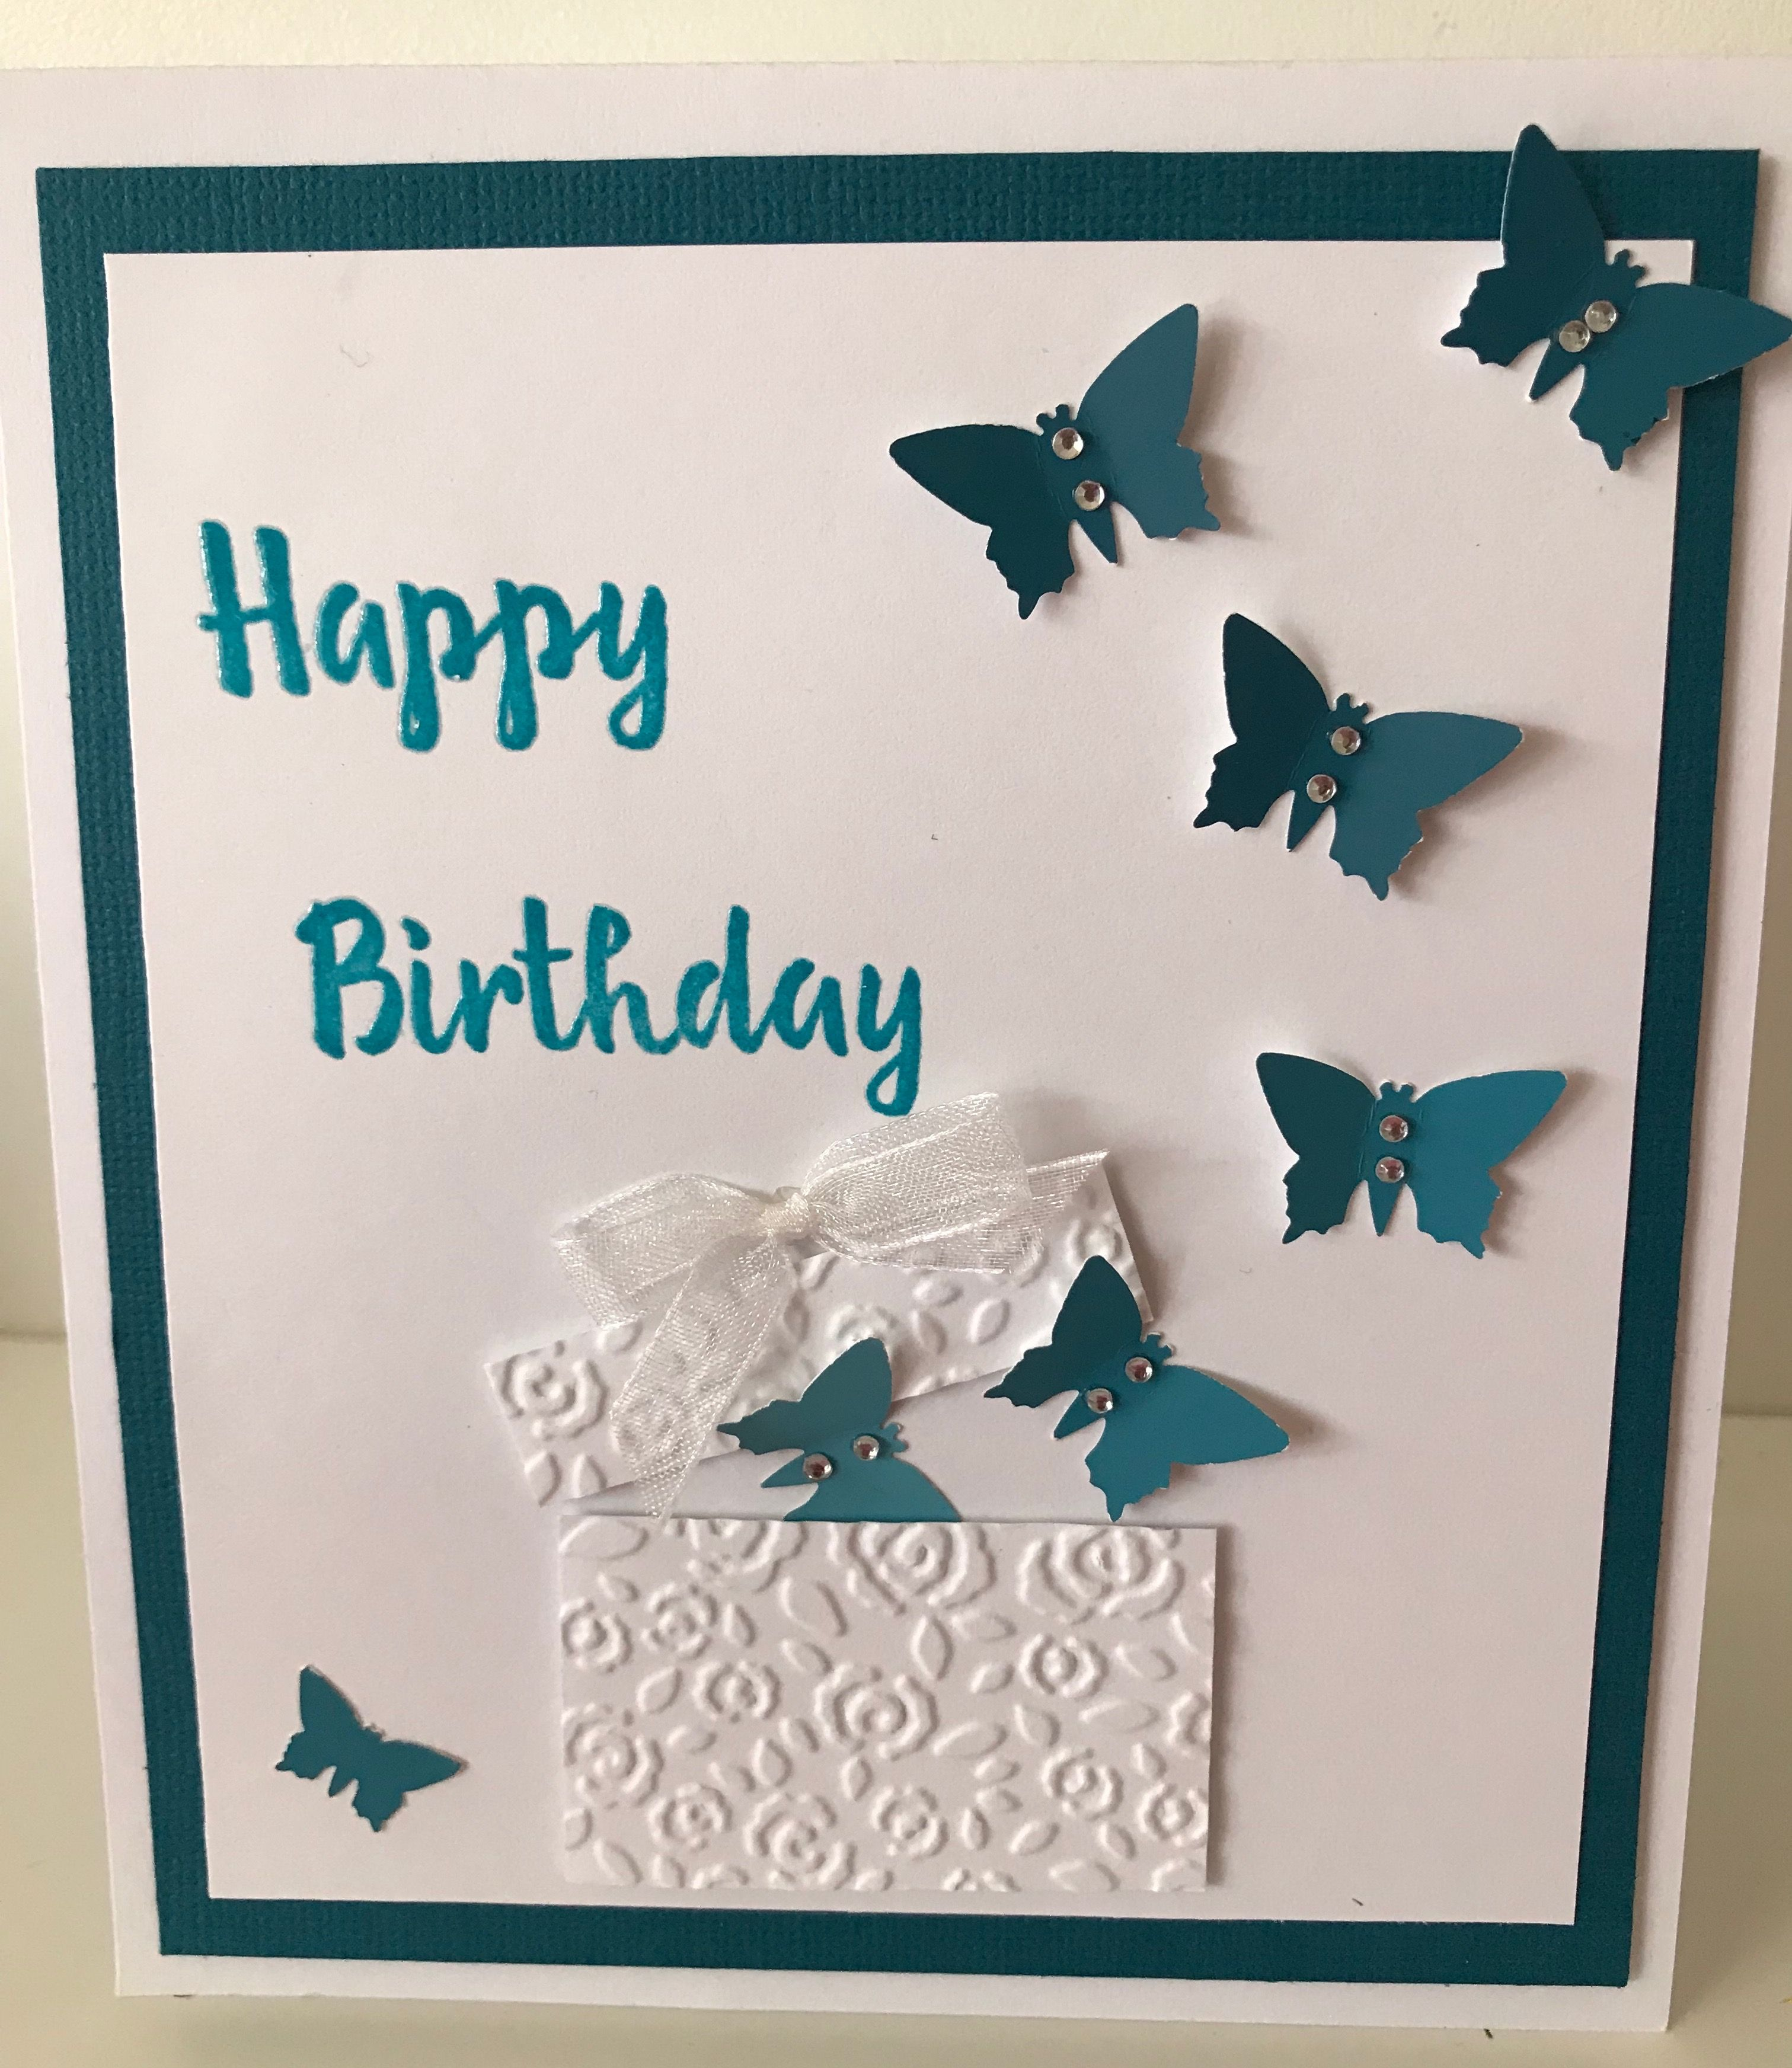 Butterflies coming out of the box handmade birthday